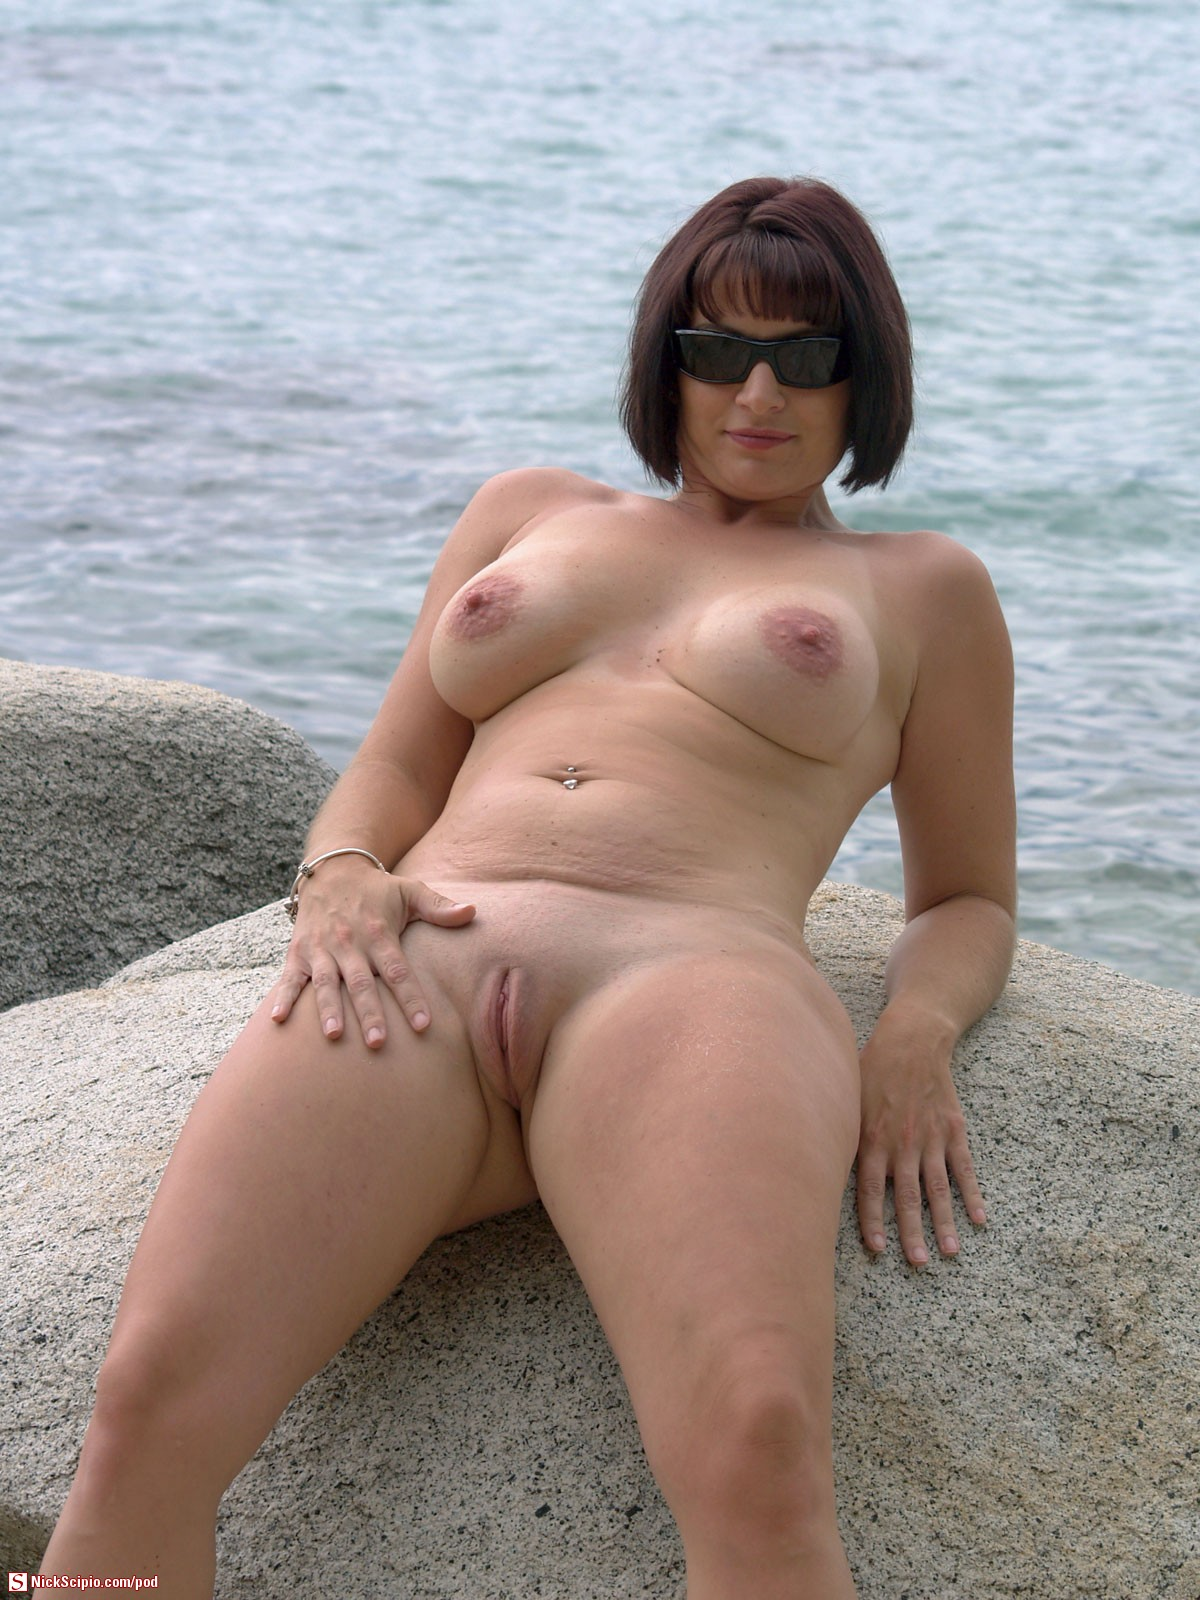 escorts over 50 years old escorts close to me